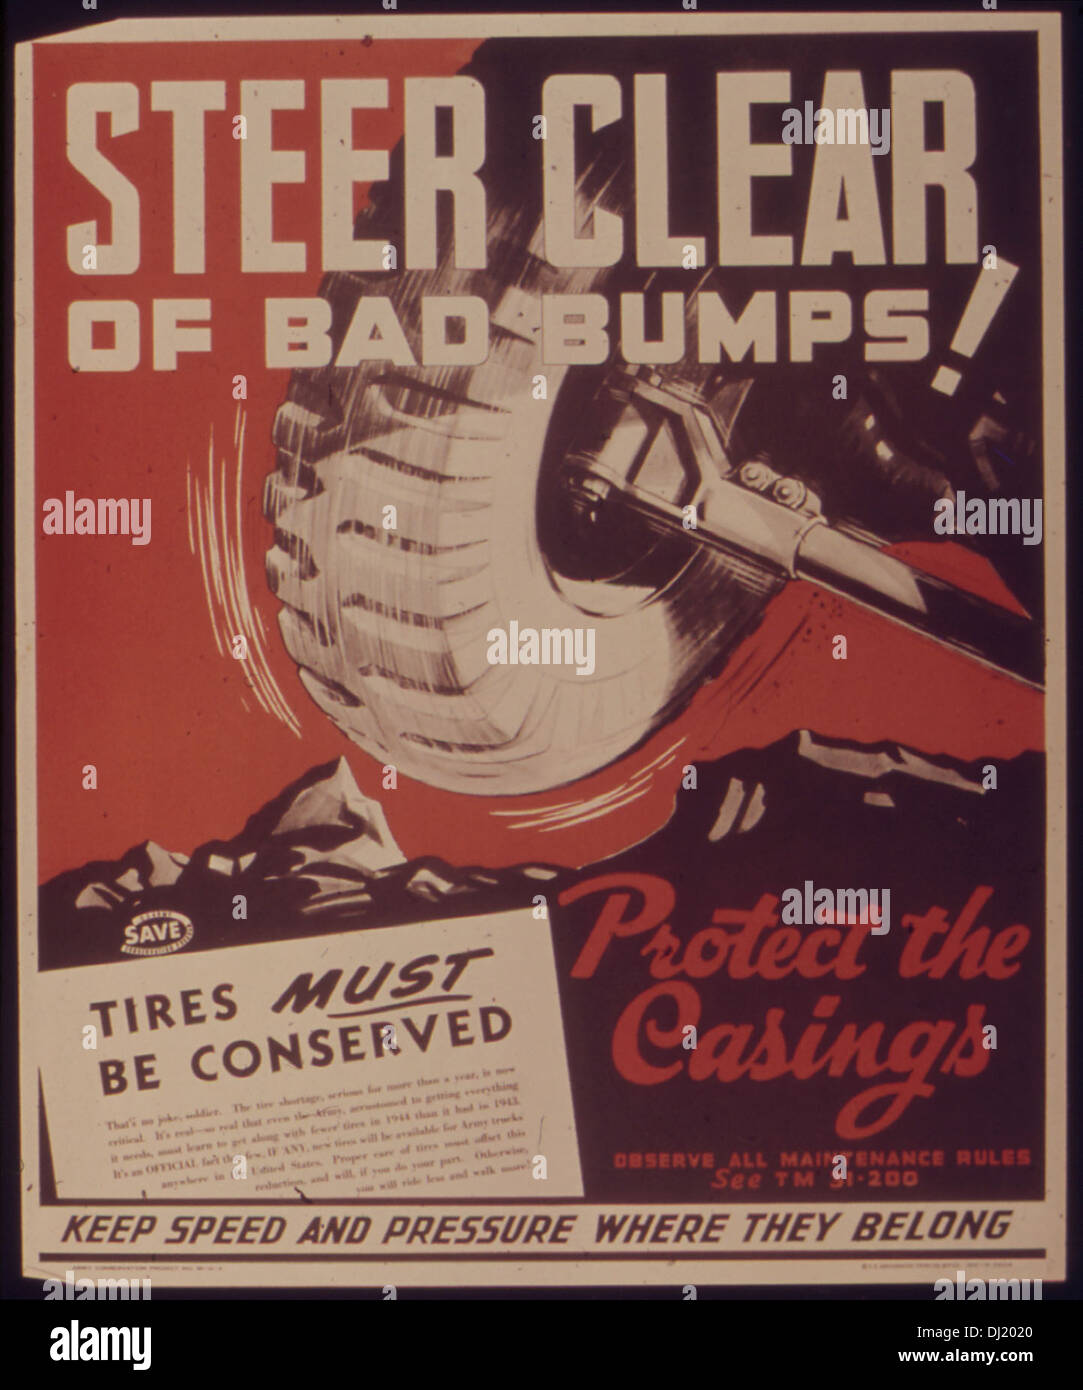 STEER CLEAR OF BAD BUMPS5E PROTECT THE CASINGS 486 - Stock Image